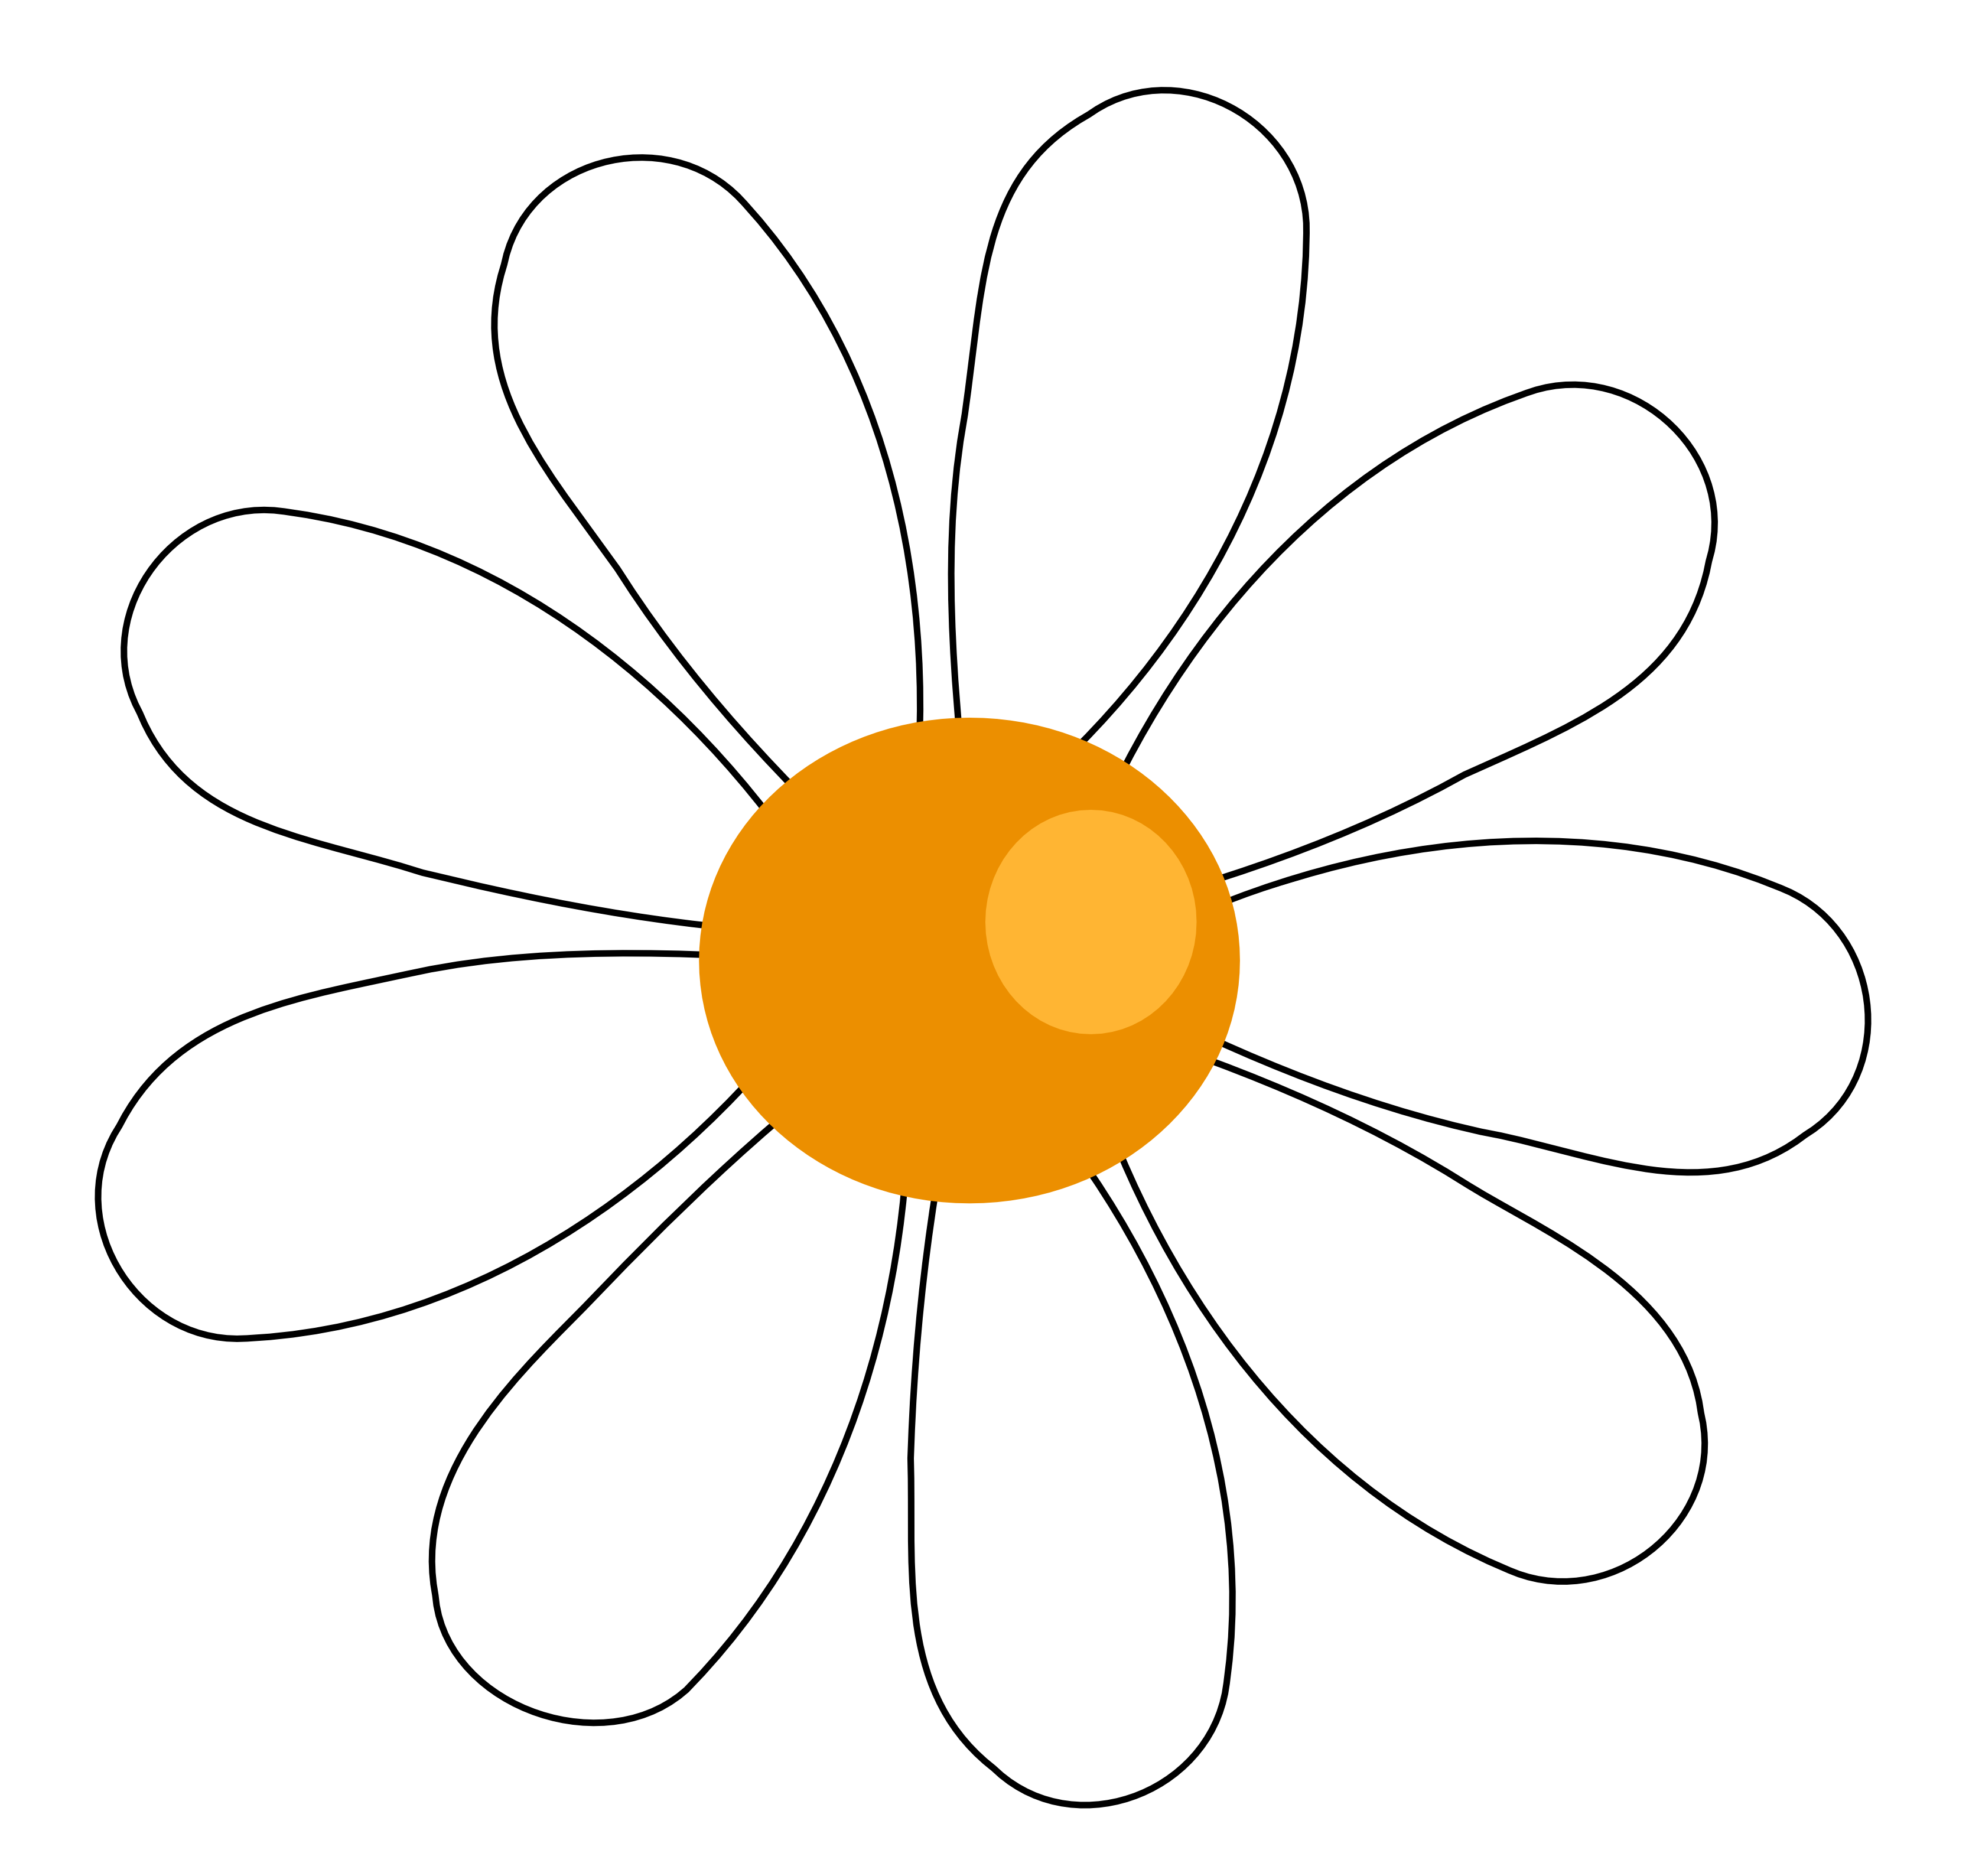 Daisy Images Clip Art - Clipart Library